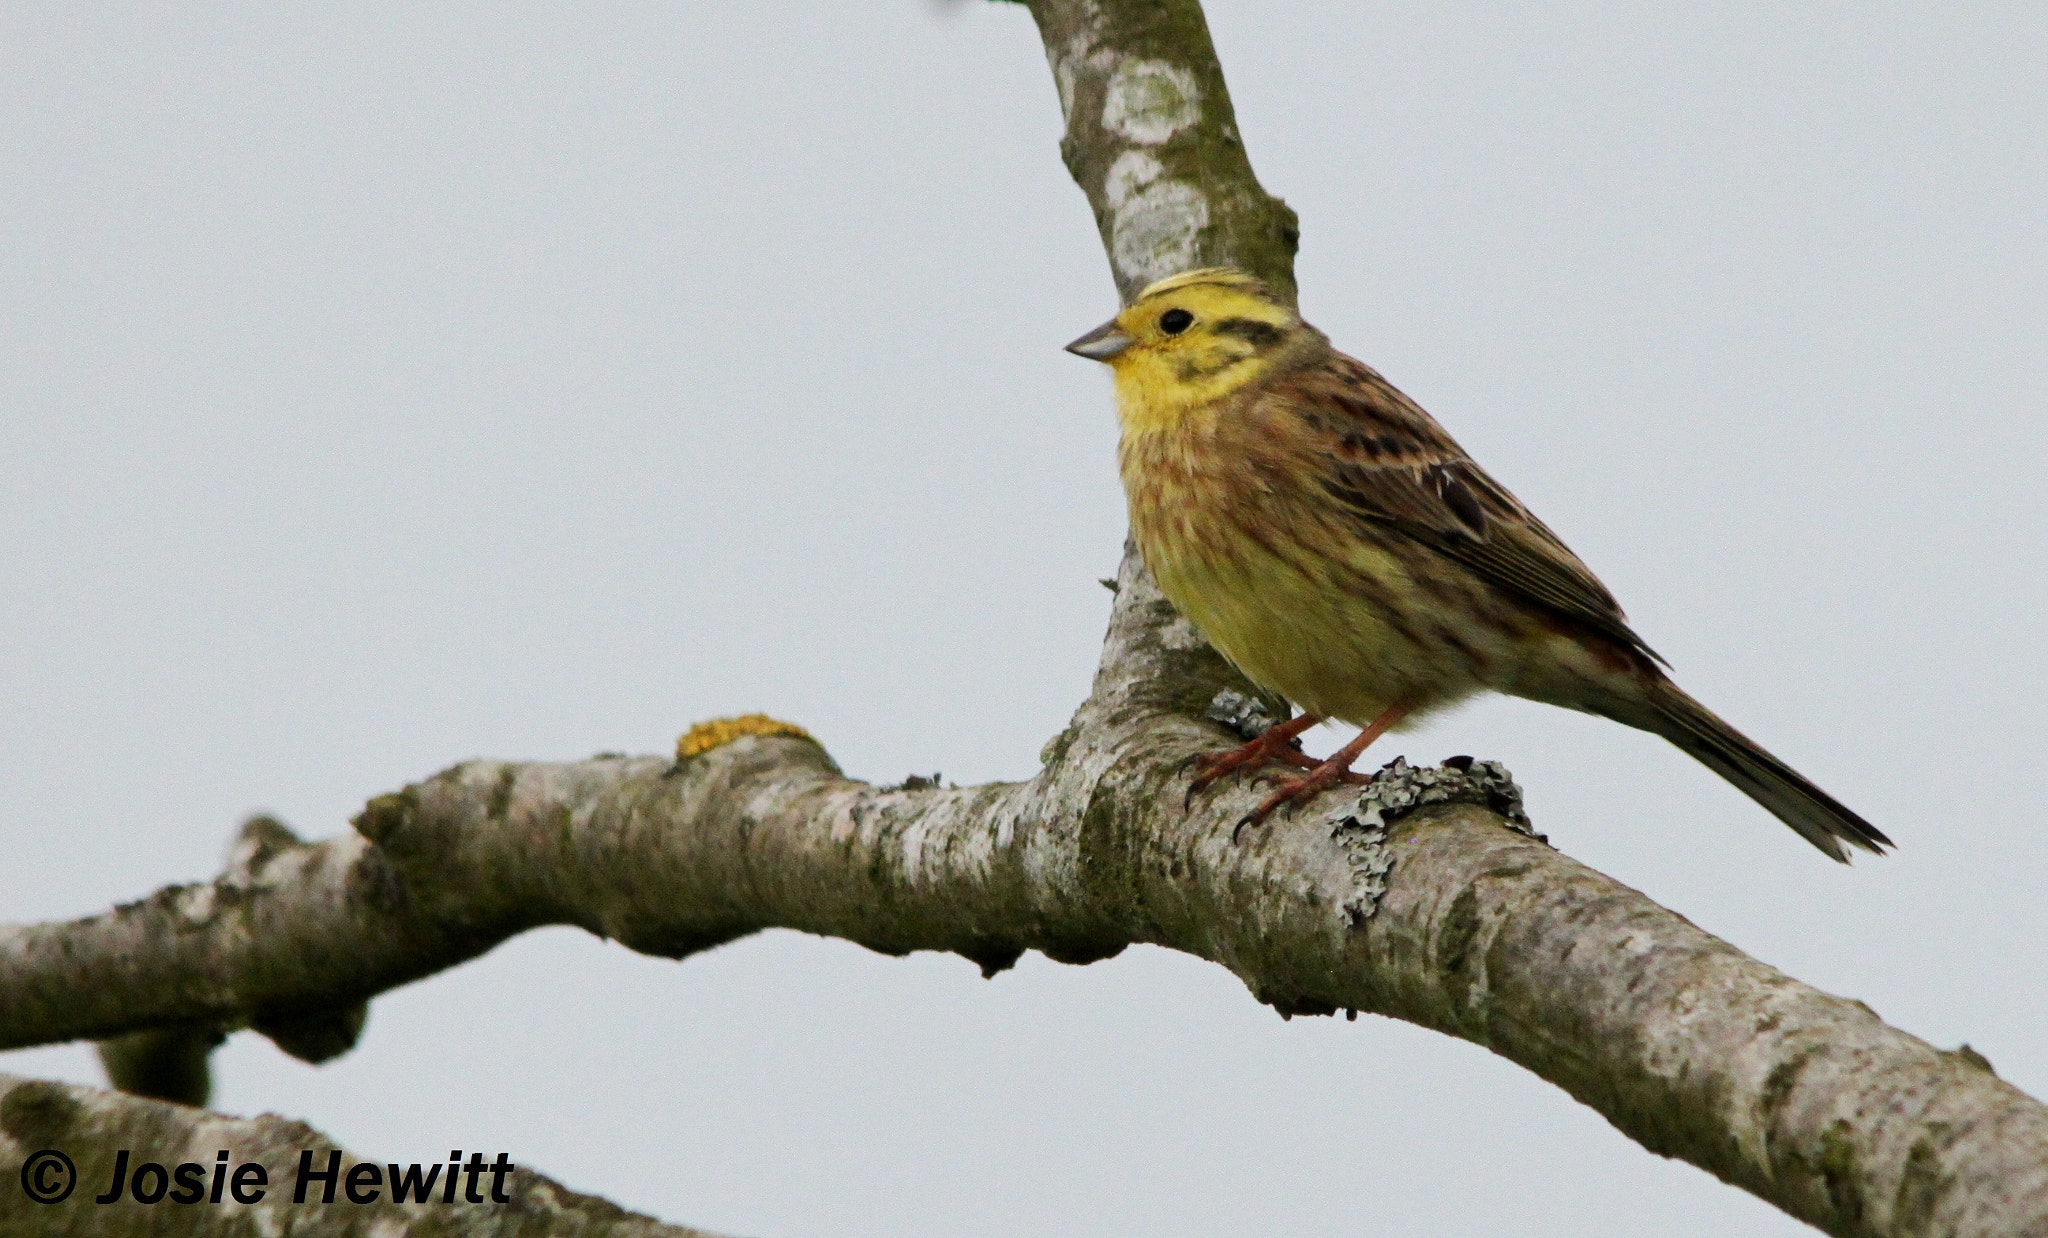 Photograph Yellowhammer by Josie Hewitt on 500px